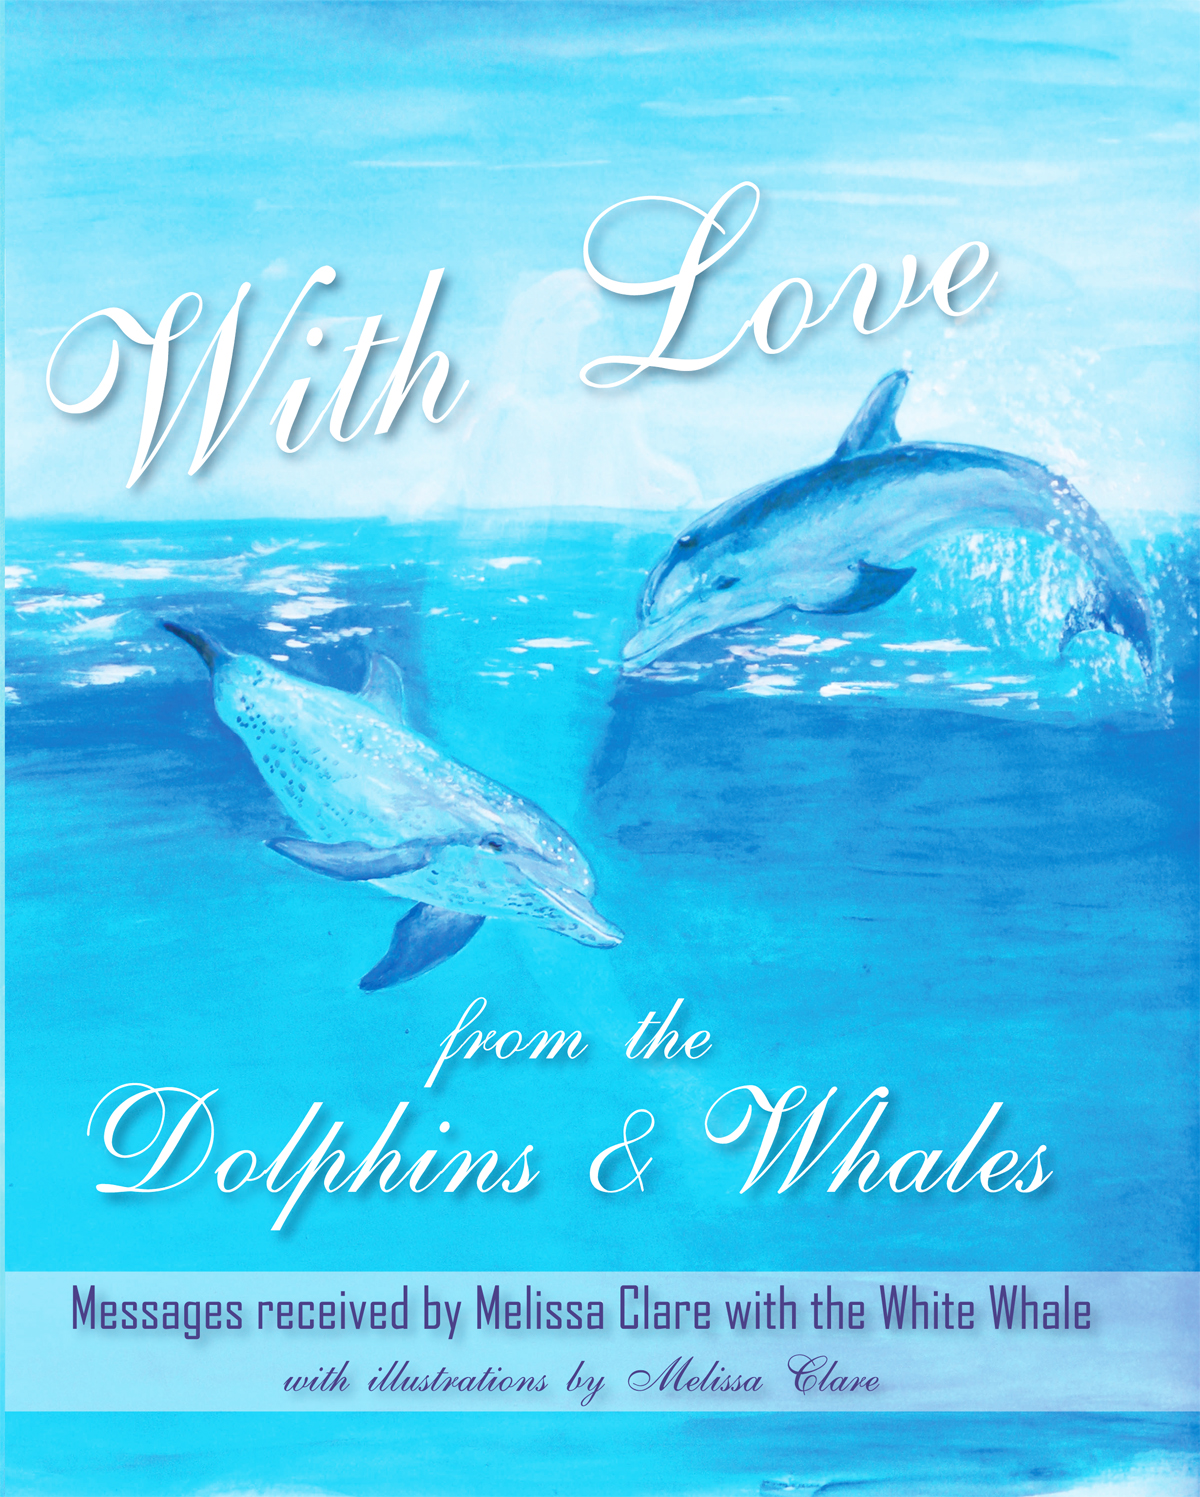 With Love from the Dolphins & Whales Image